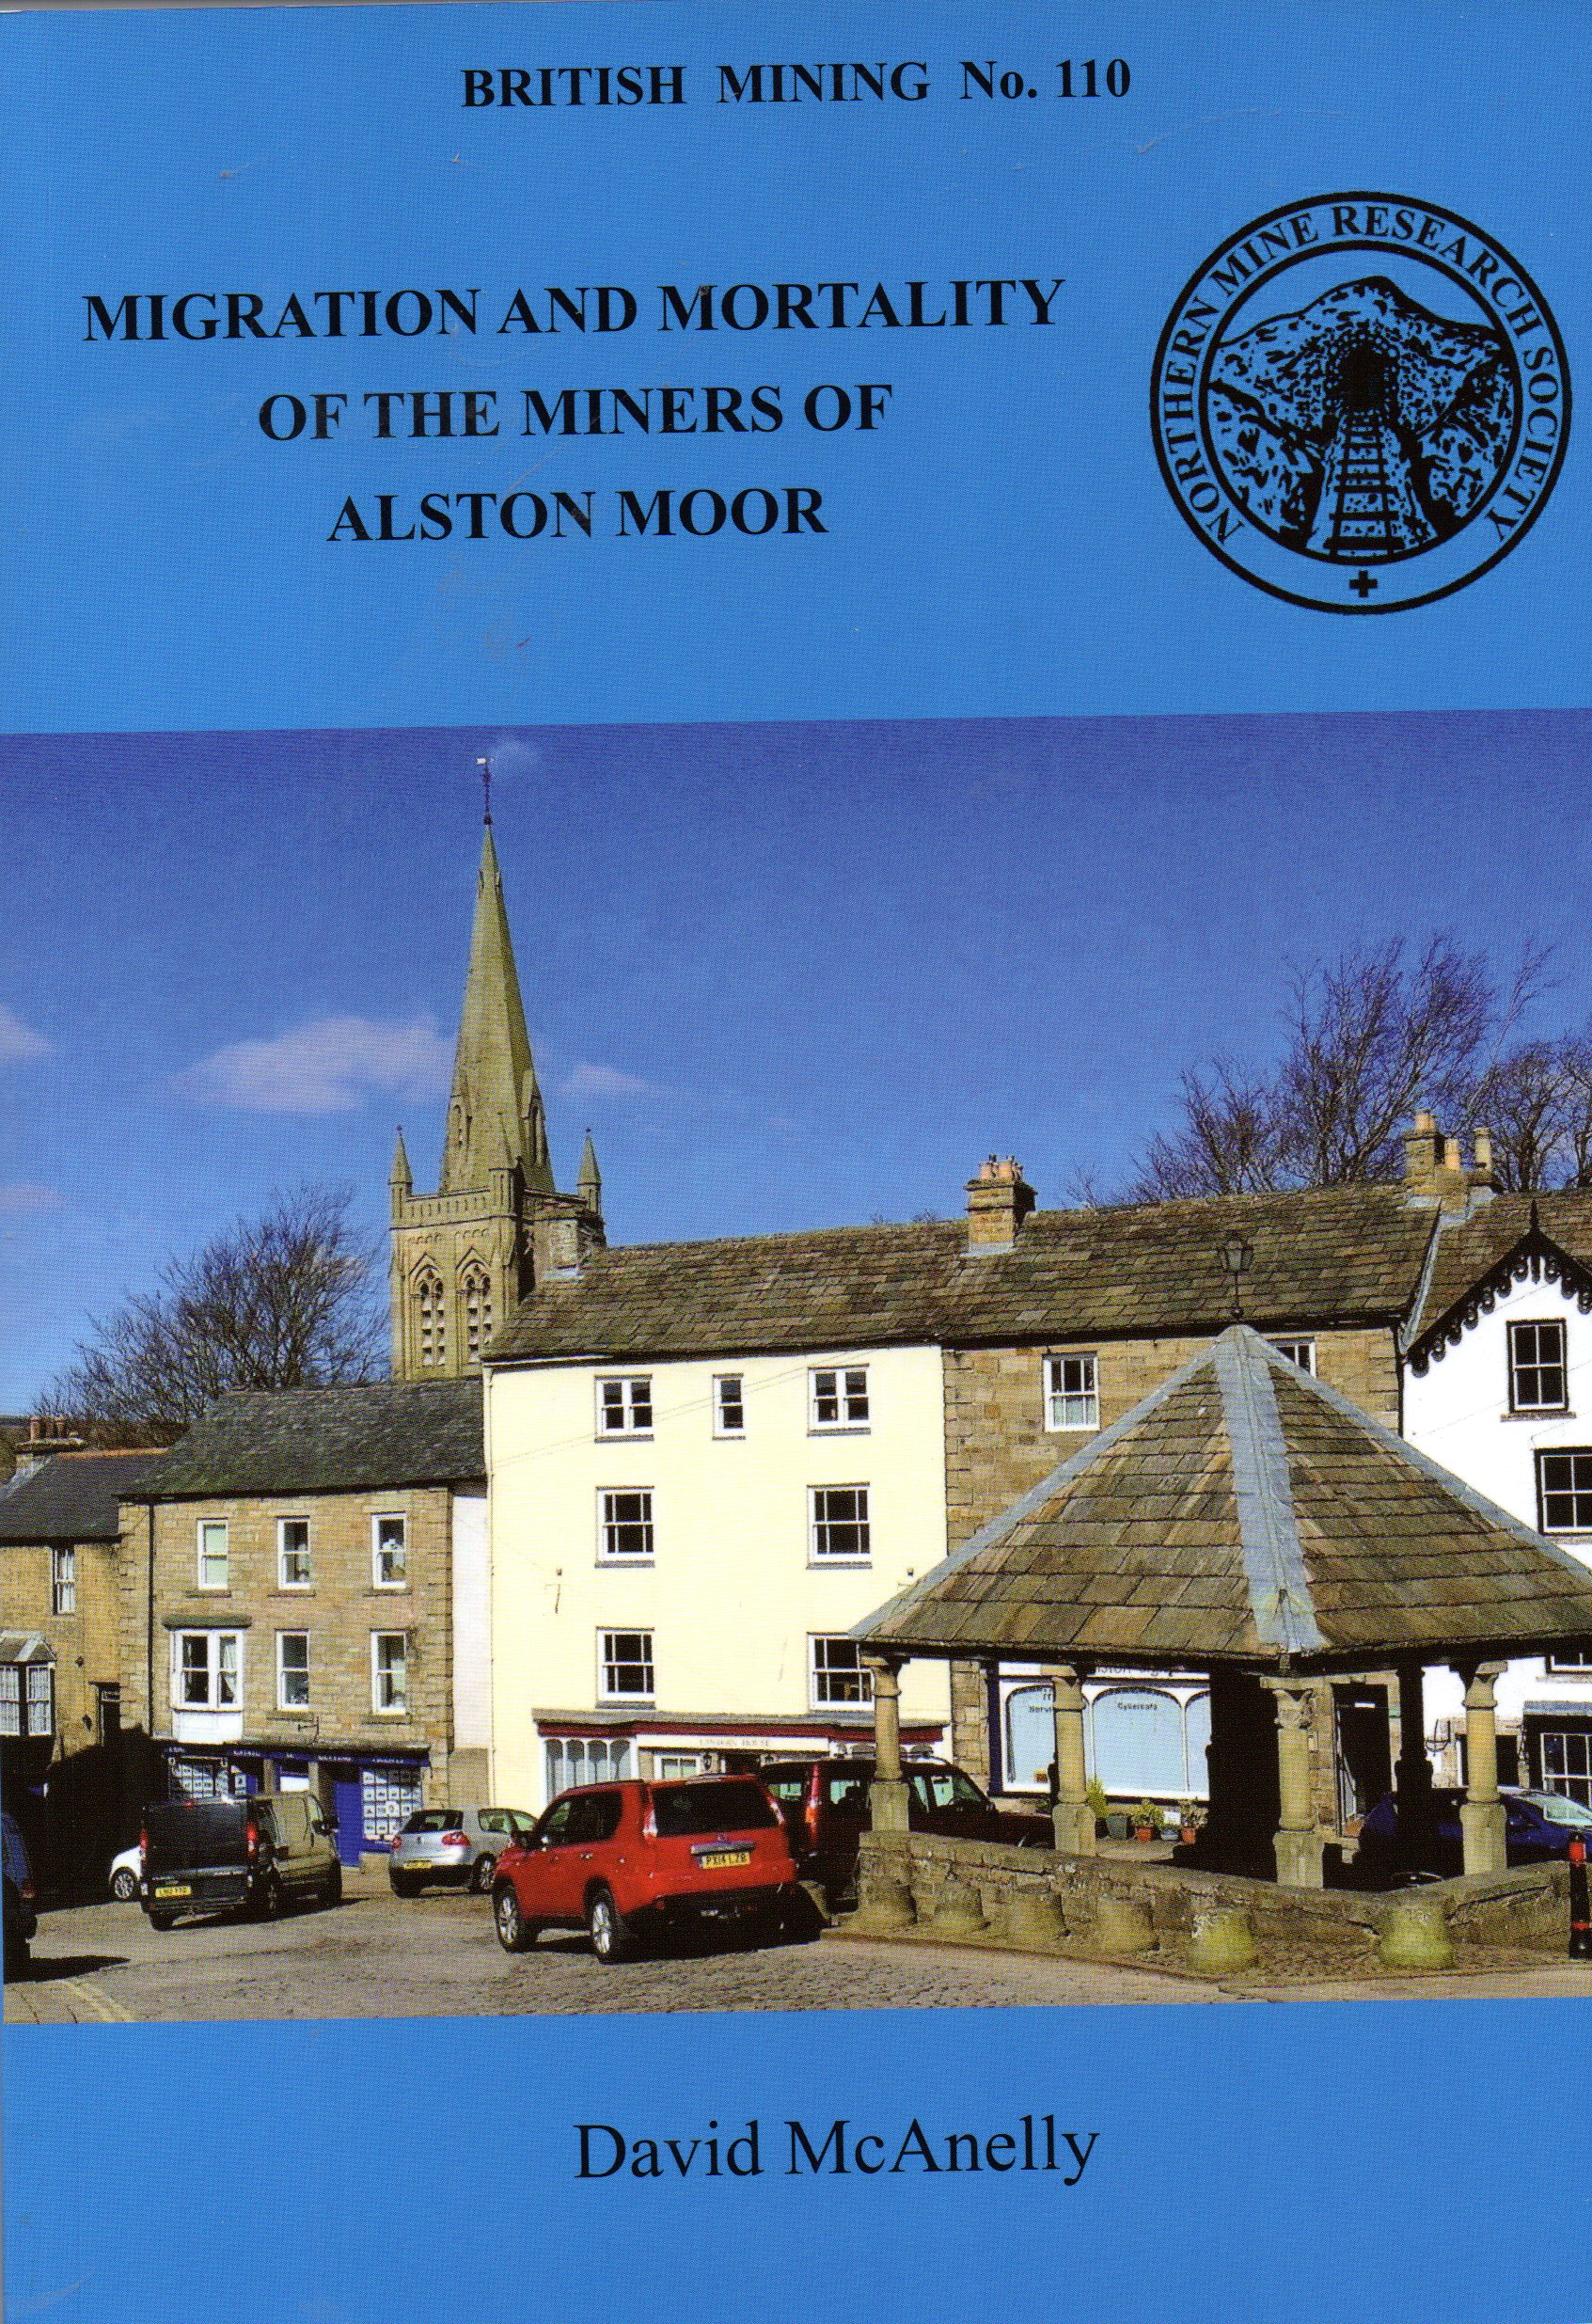 British Mining No 110 - Migration and Mortality of the Miners of Alston Moor